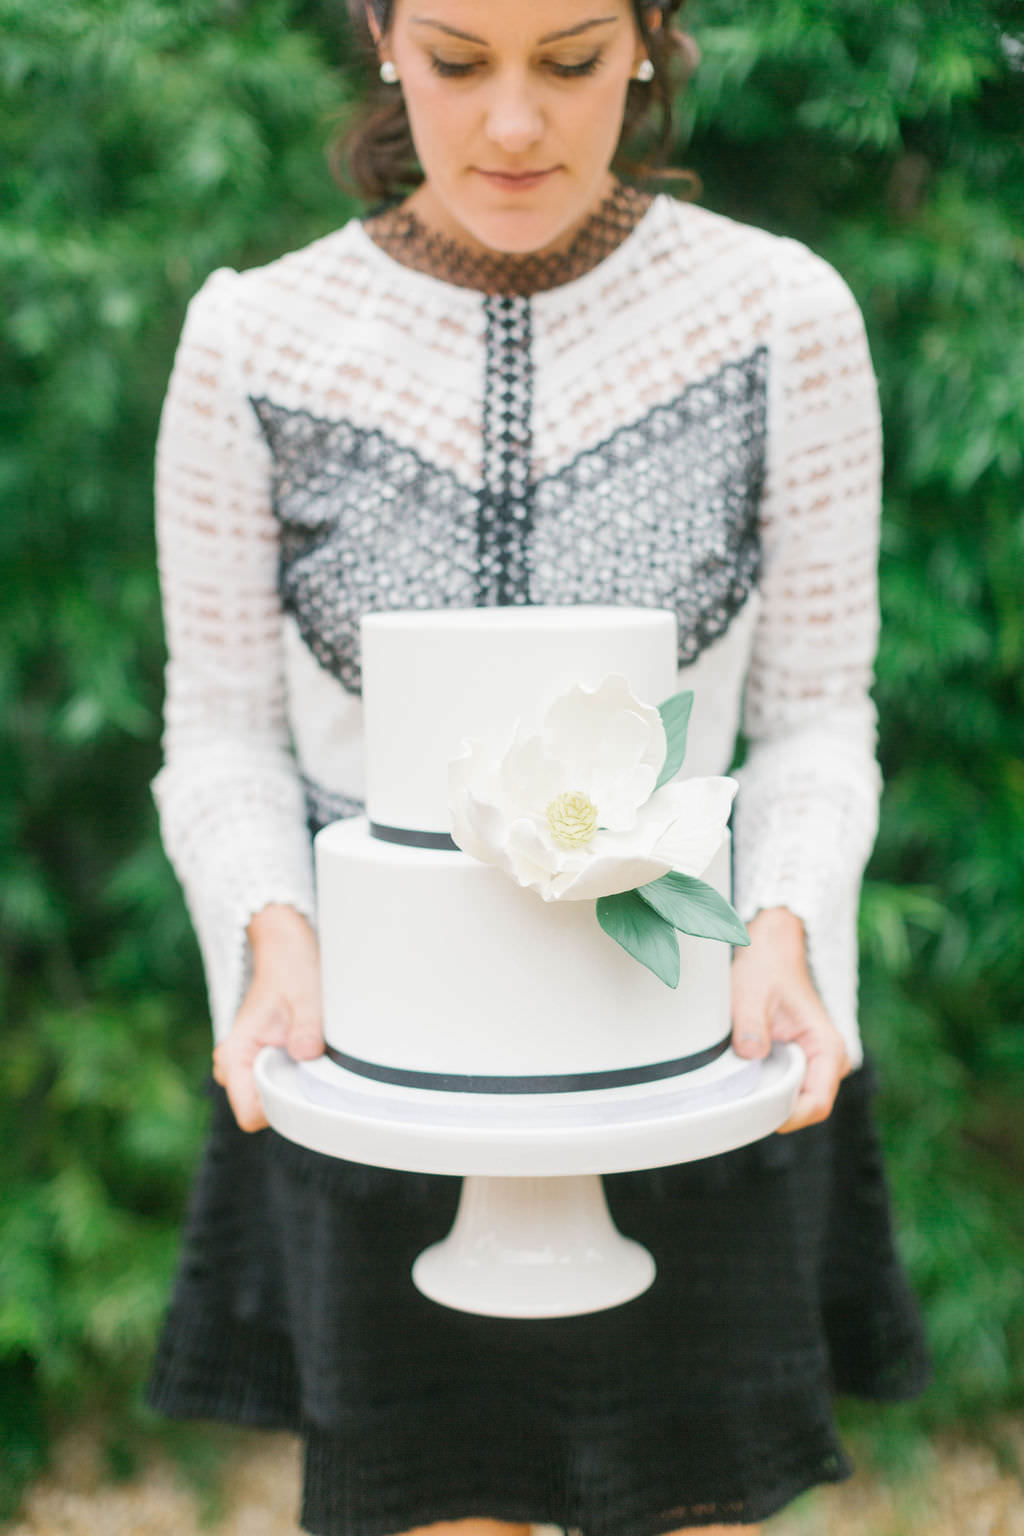 Bride to Be Portrait with Small Two Tiered White Cake with Sugar Flower Magnolia Decor